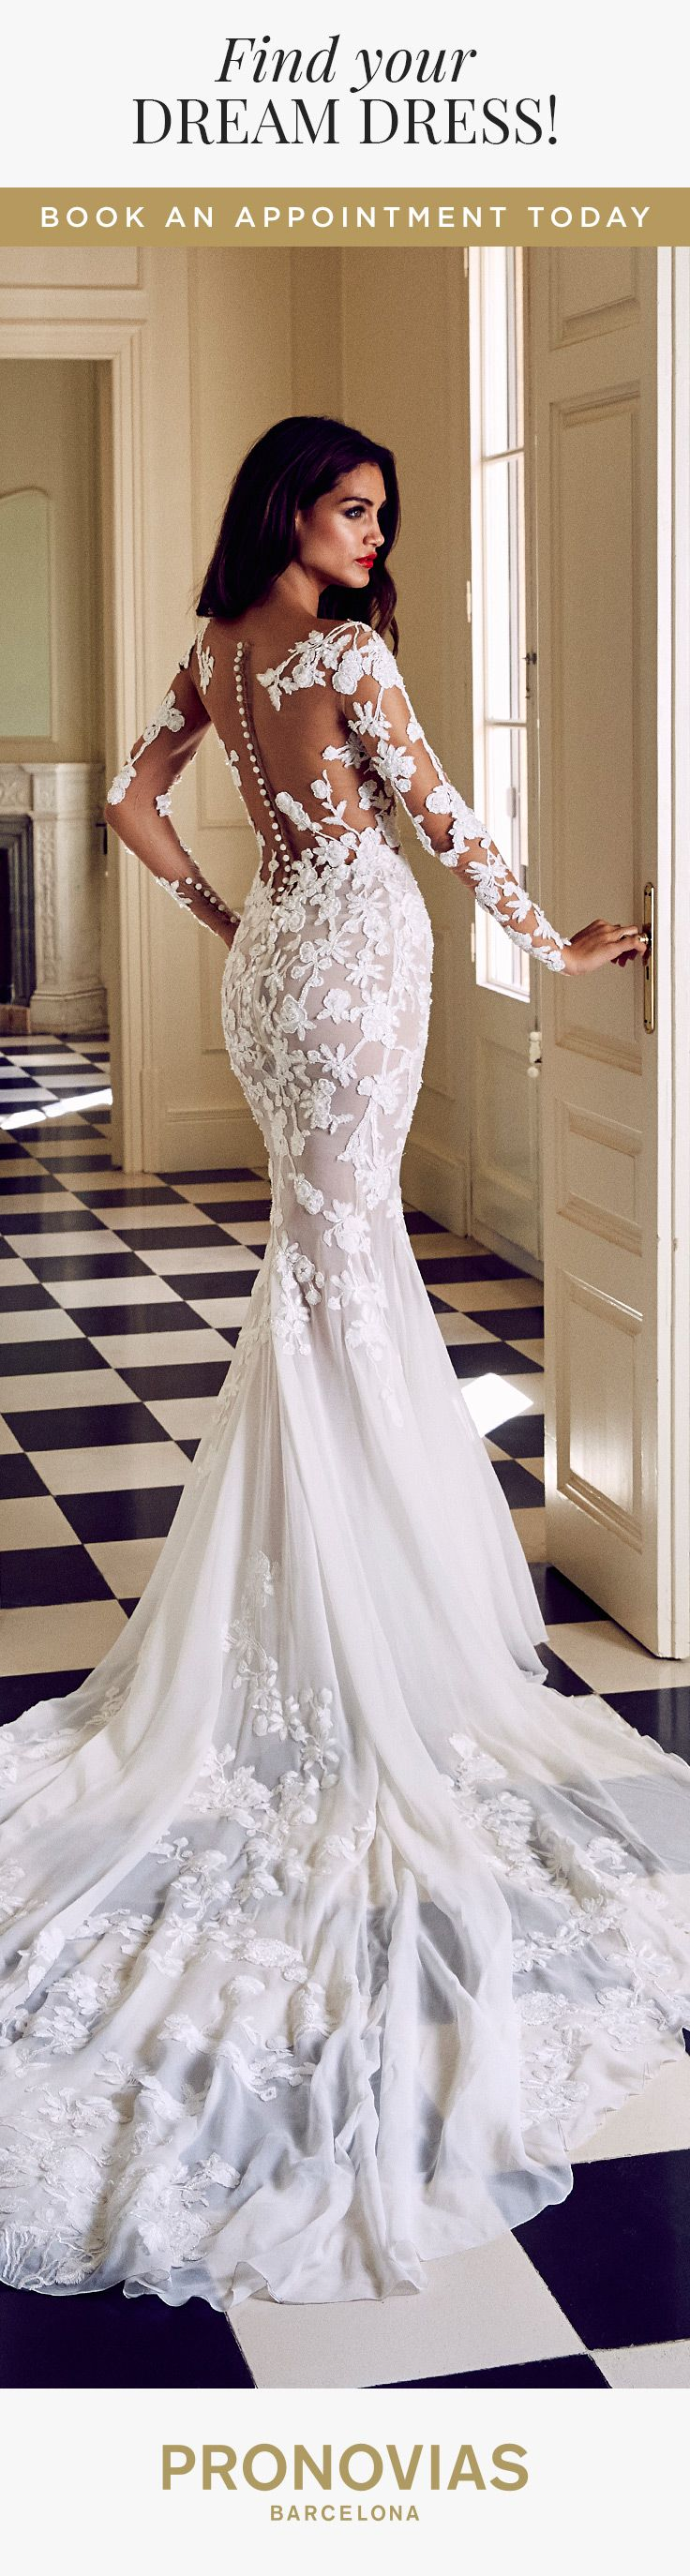 Lace wedding dress under 500 february 2019  best Wedding Dresses images on Pinterest  Homecoming dresses